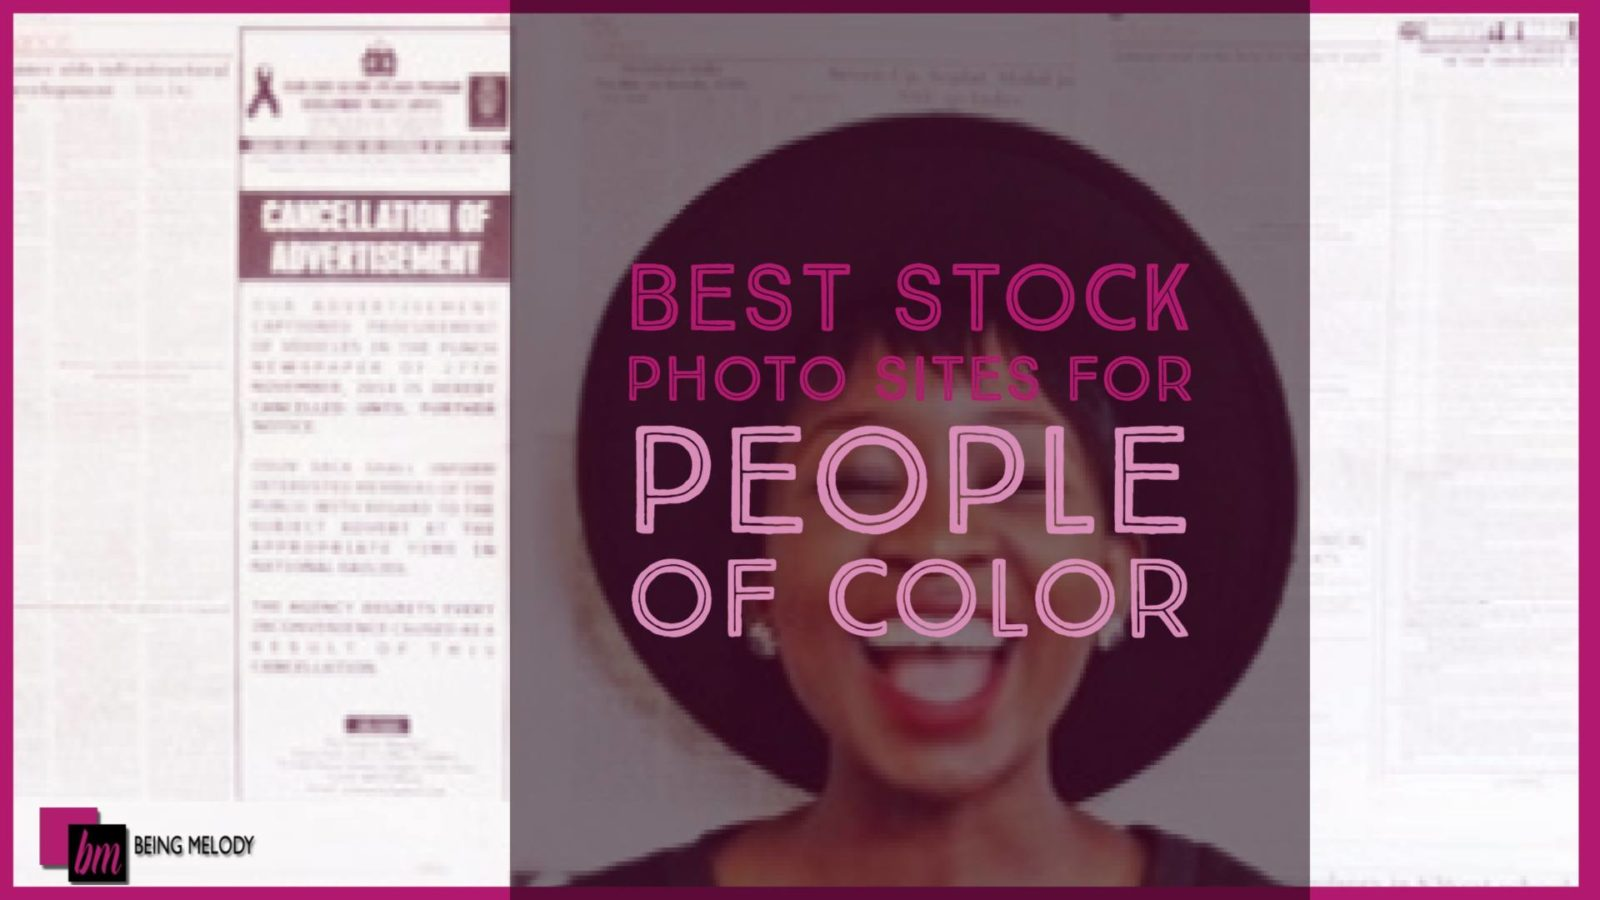 Best Culturally Diverse Stock Photo Sites for People of Color